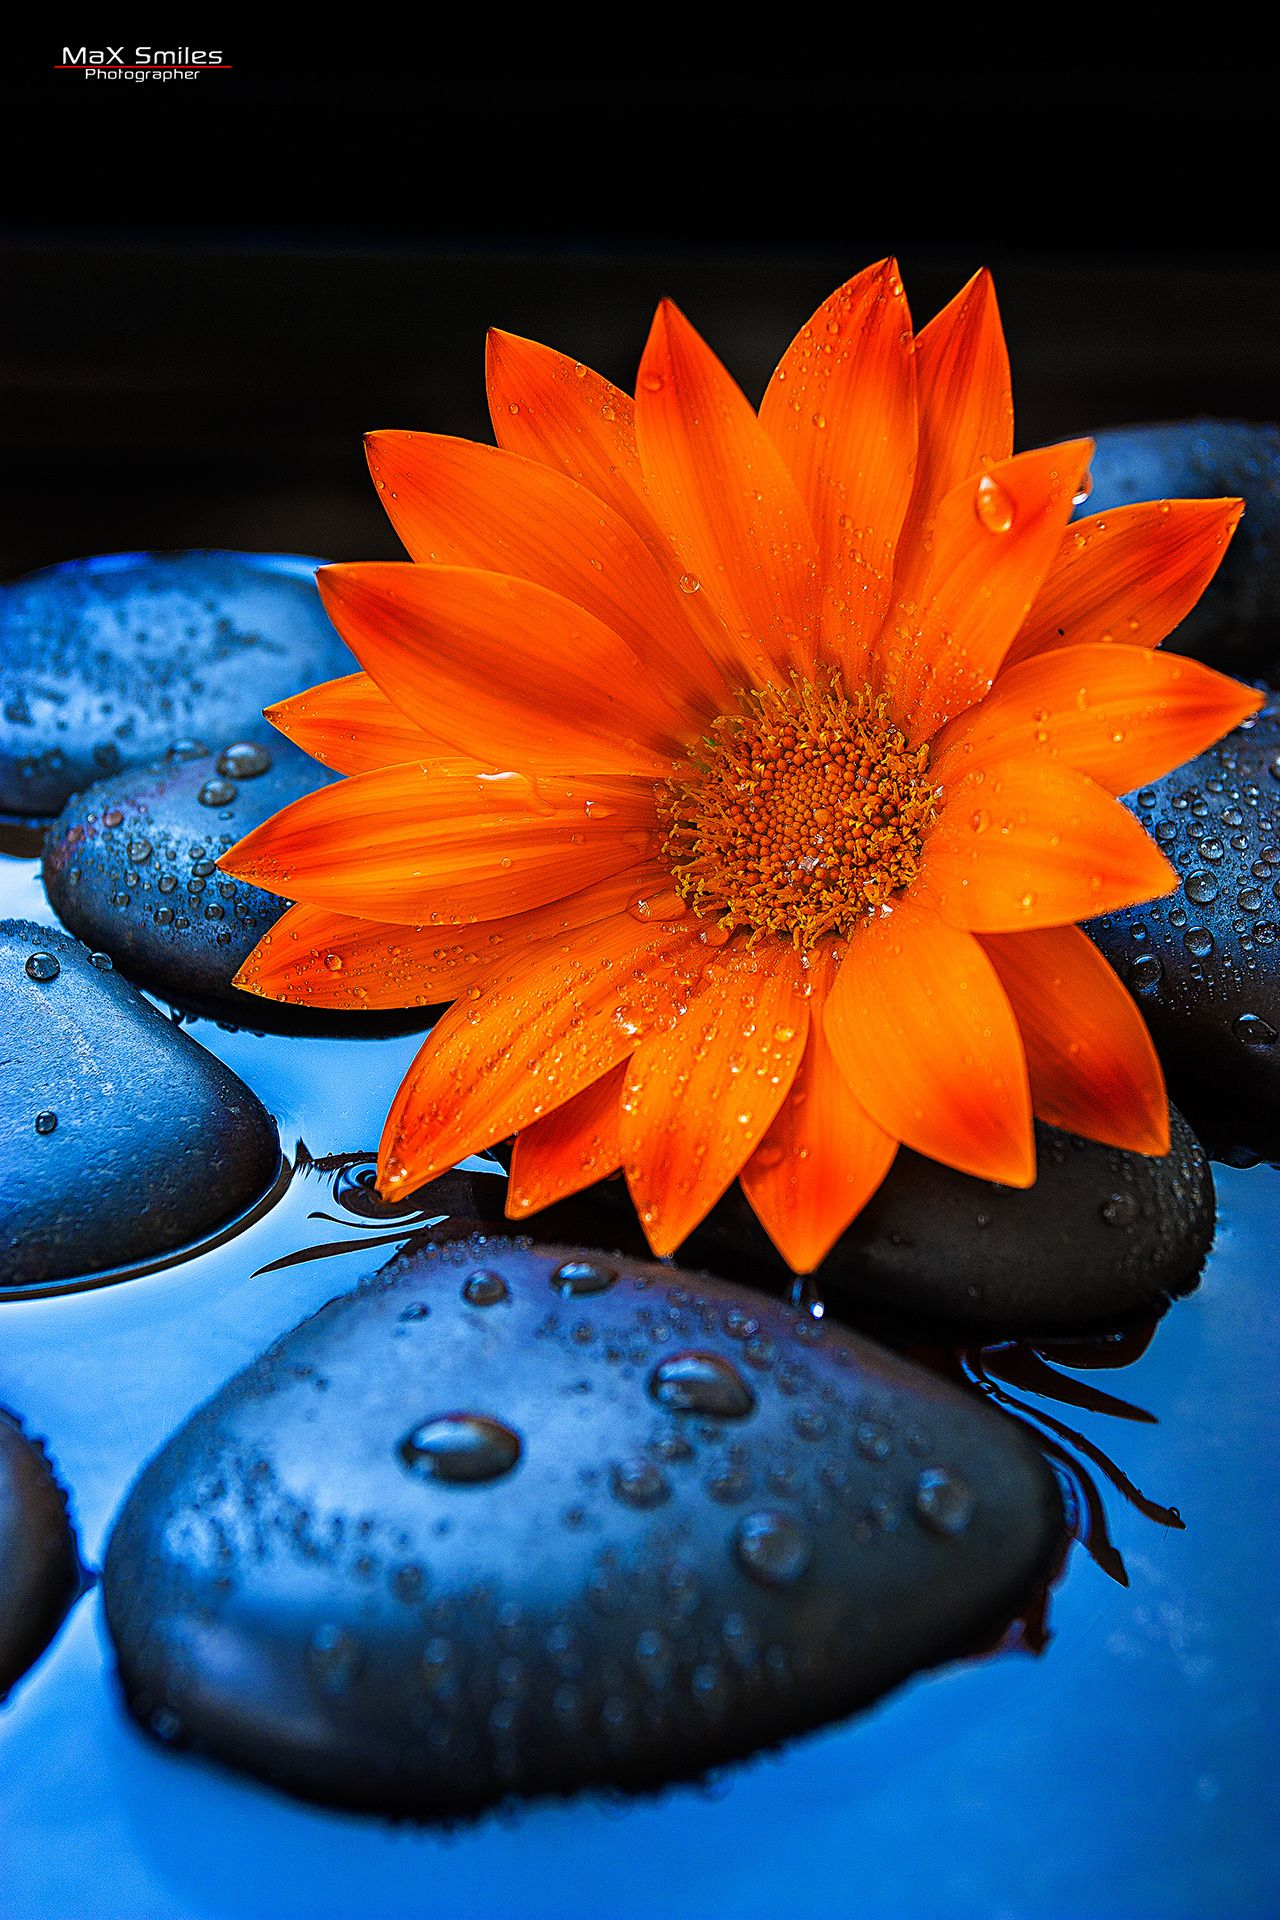 Flower 01 By Max Smiles On 500px Orange Aesthetic Blue